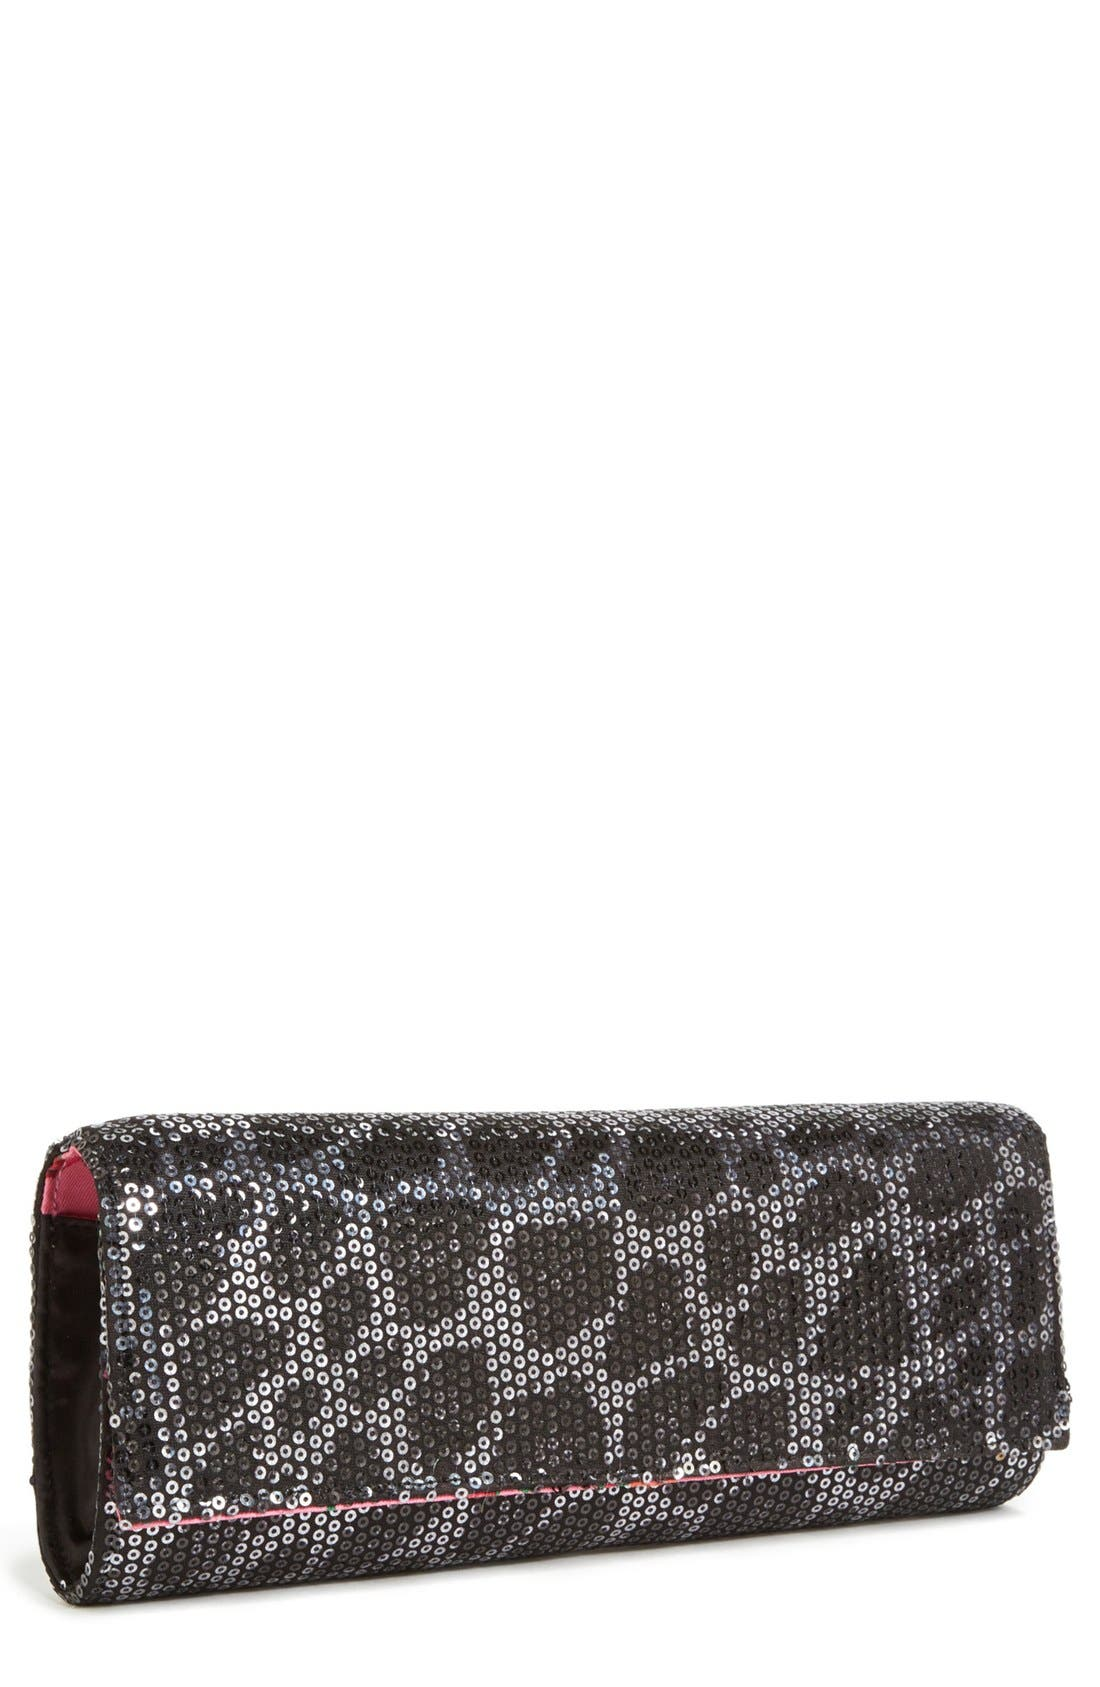 Main Image - Betsey Johnson Sequin Leopard Clutch